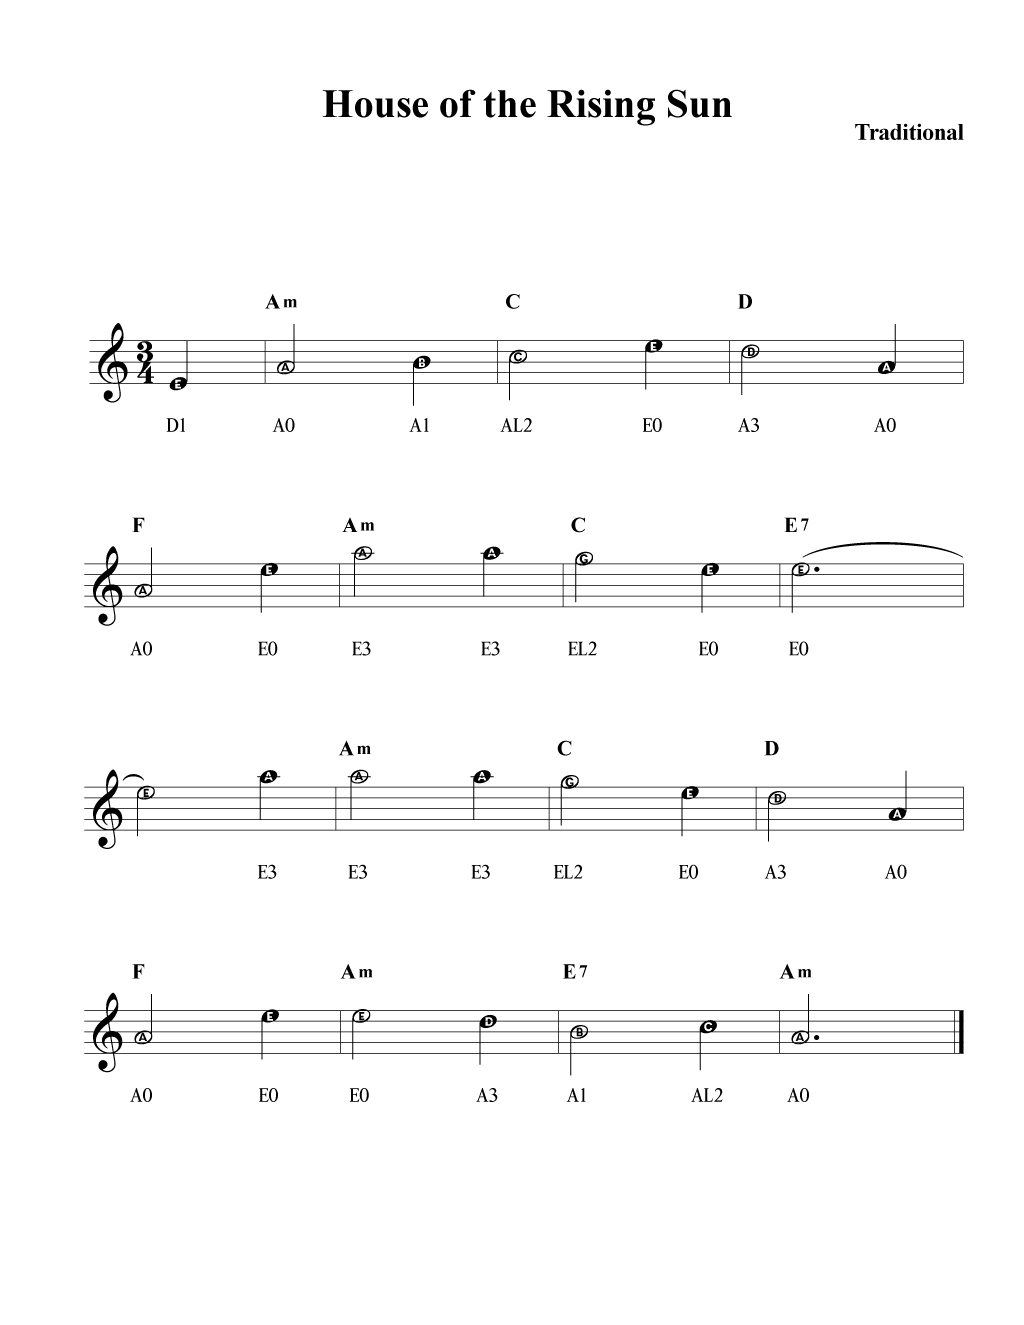 House-of-the-Rising-Sun-fiddle-tab-violin-tablature